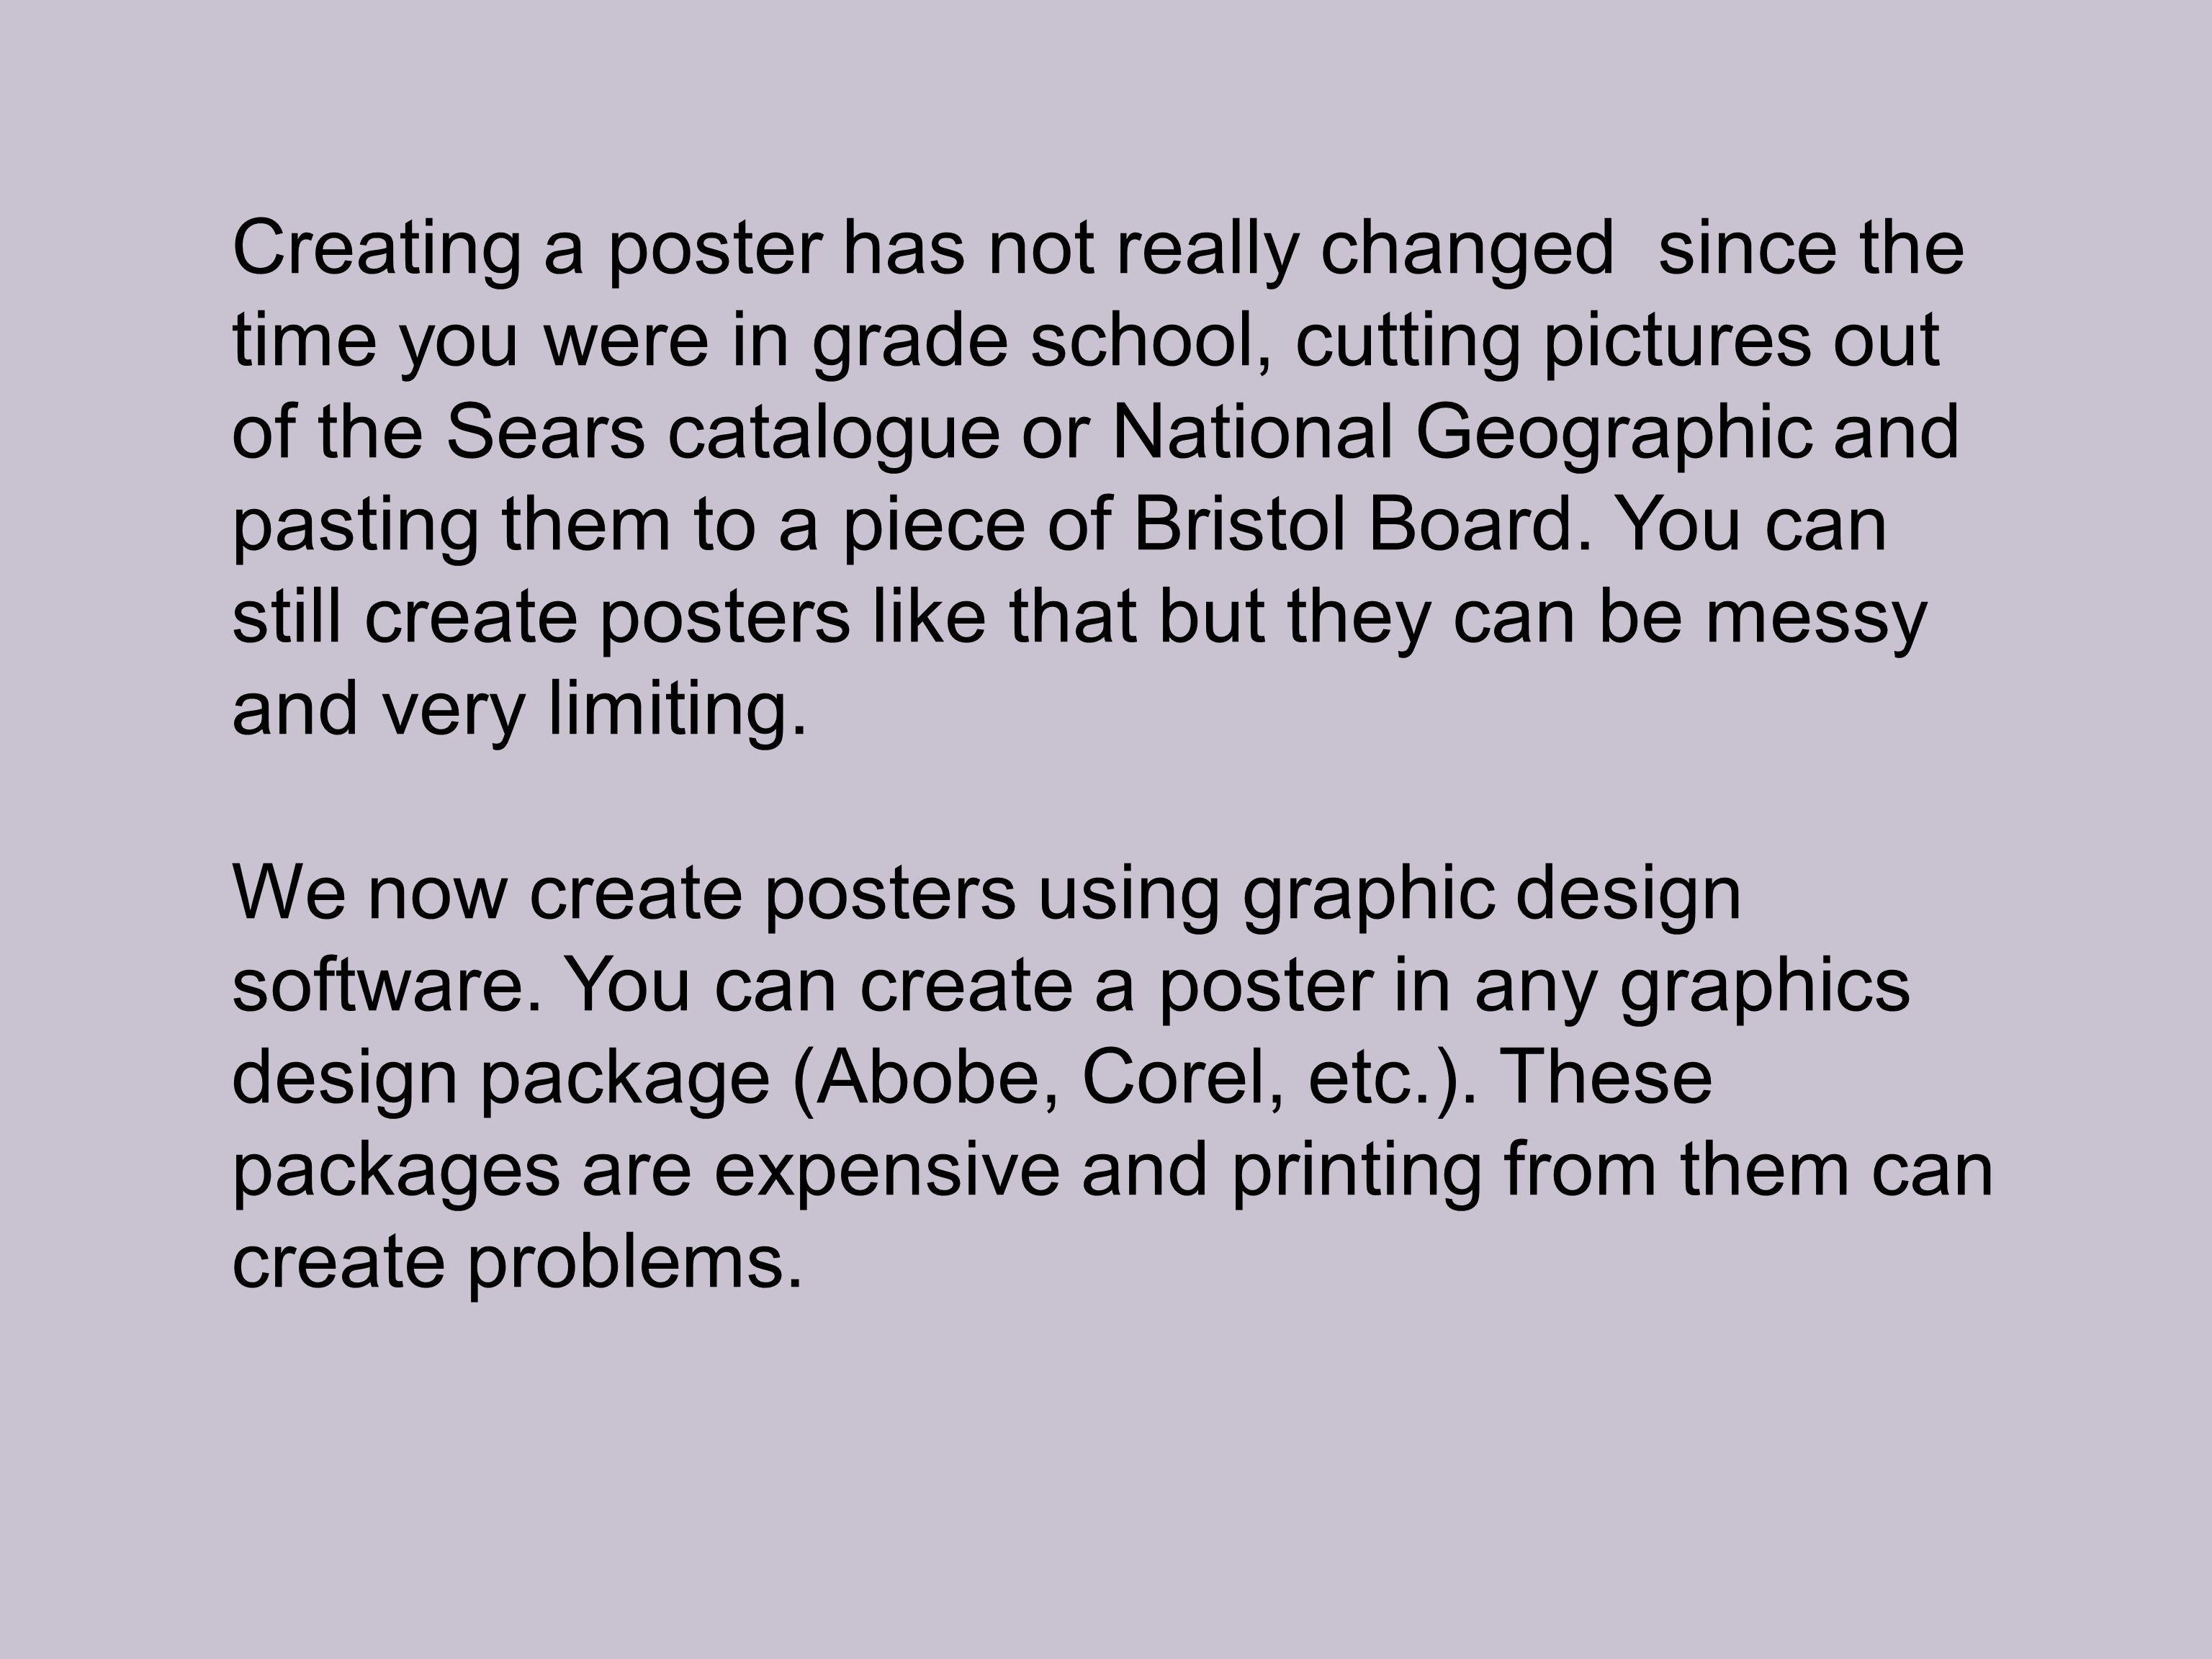 Graphic design poster 101 - We Now Create Posters Using Graphic Design Software You Can Create A Poster In Any Graphics Design Package Abobe Corel Etc